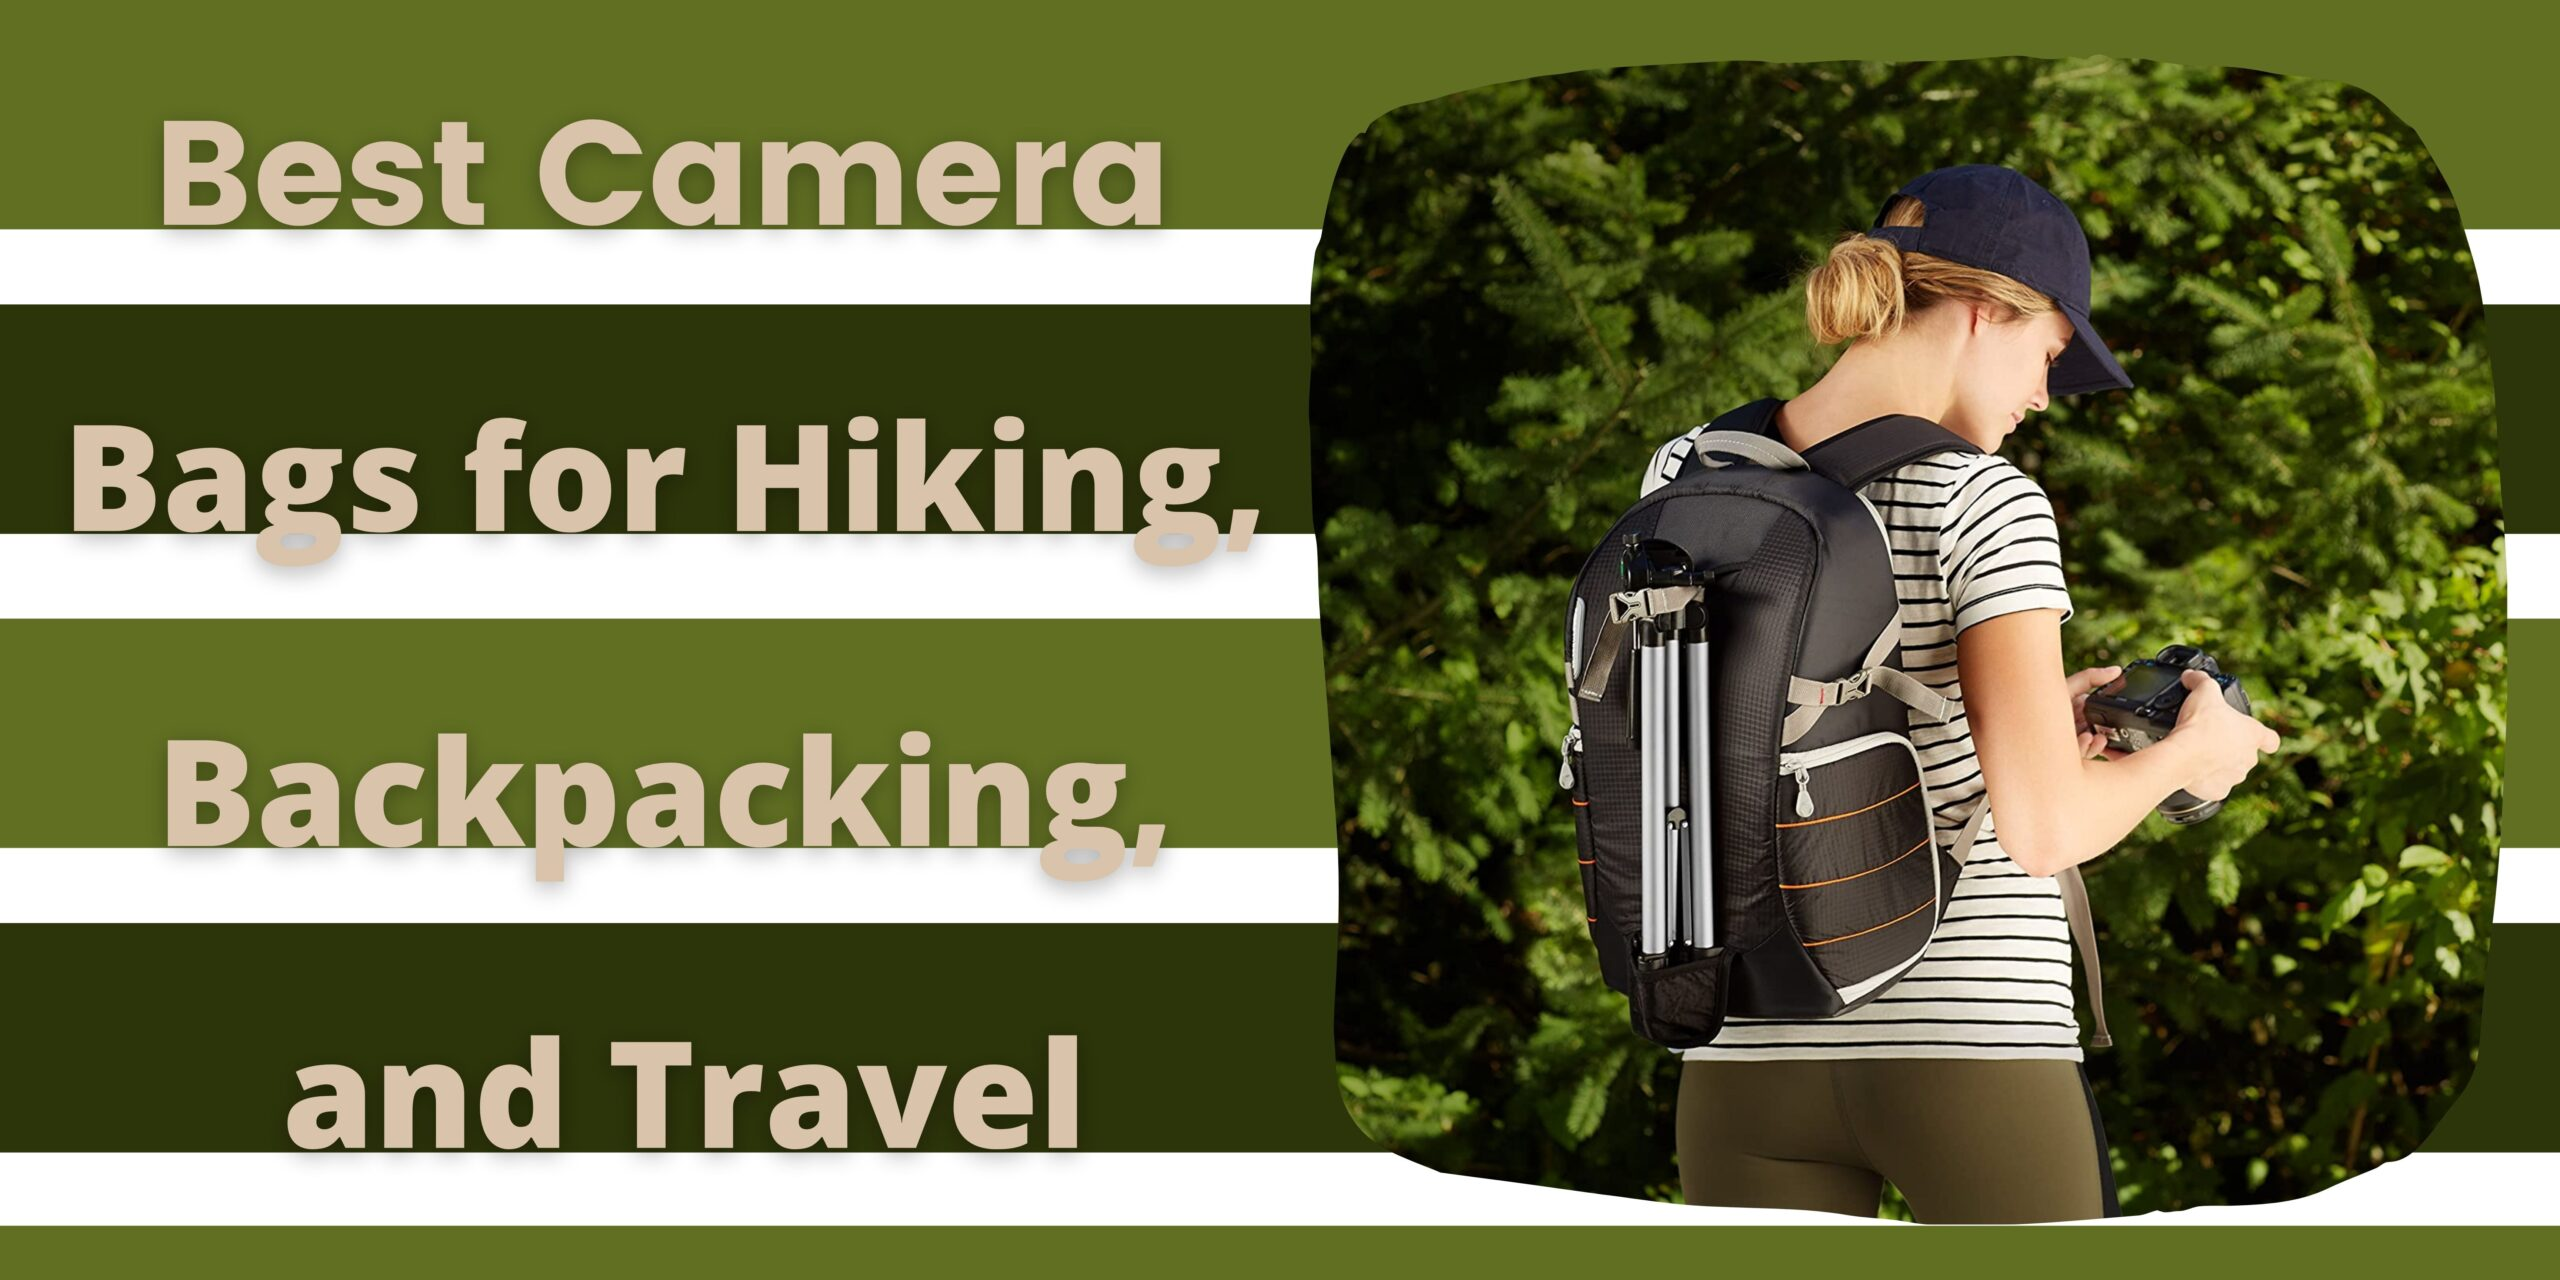 10 Best Camera Bags for Hiking, Backpacking, and Travel